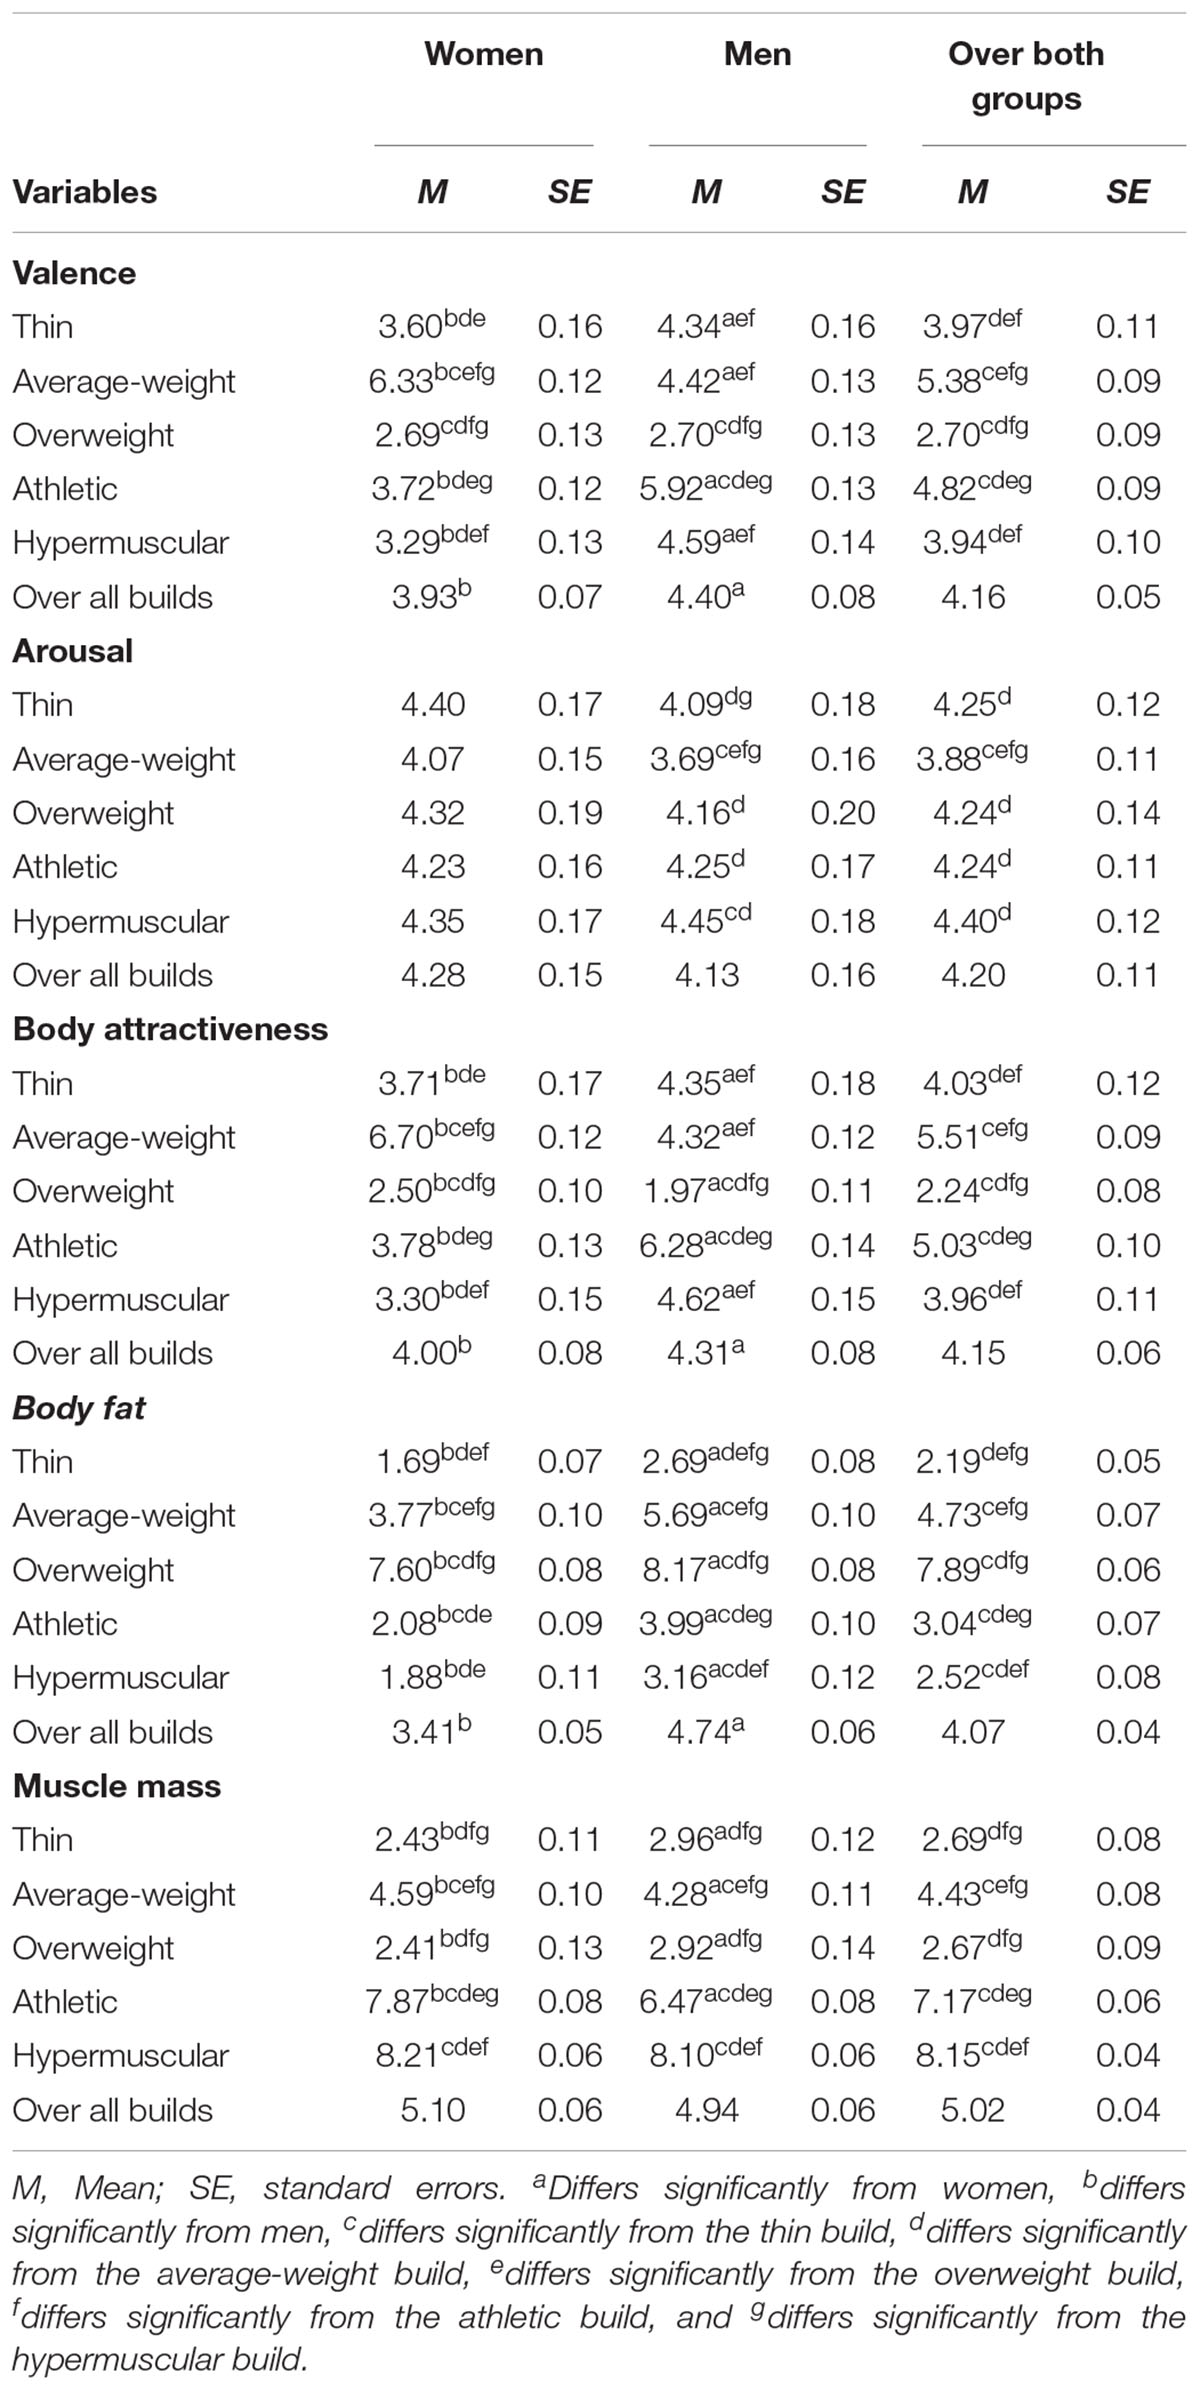 Frontiers | Gender Differences in Body Evaluation: Do Men Show More